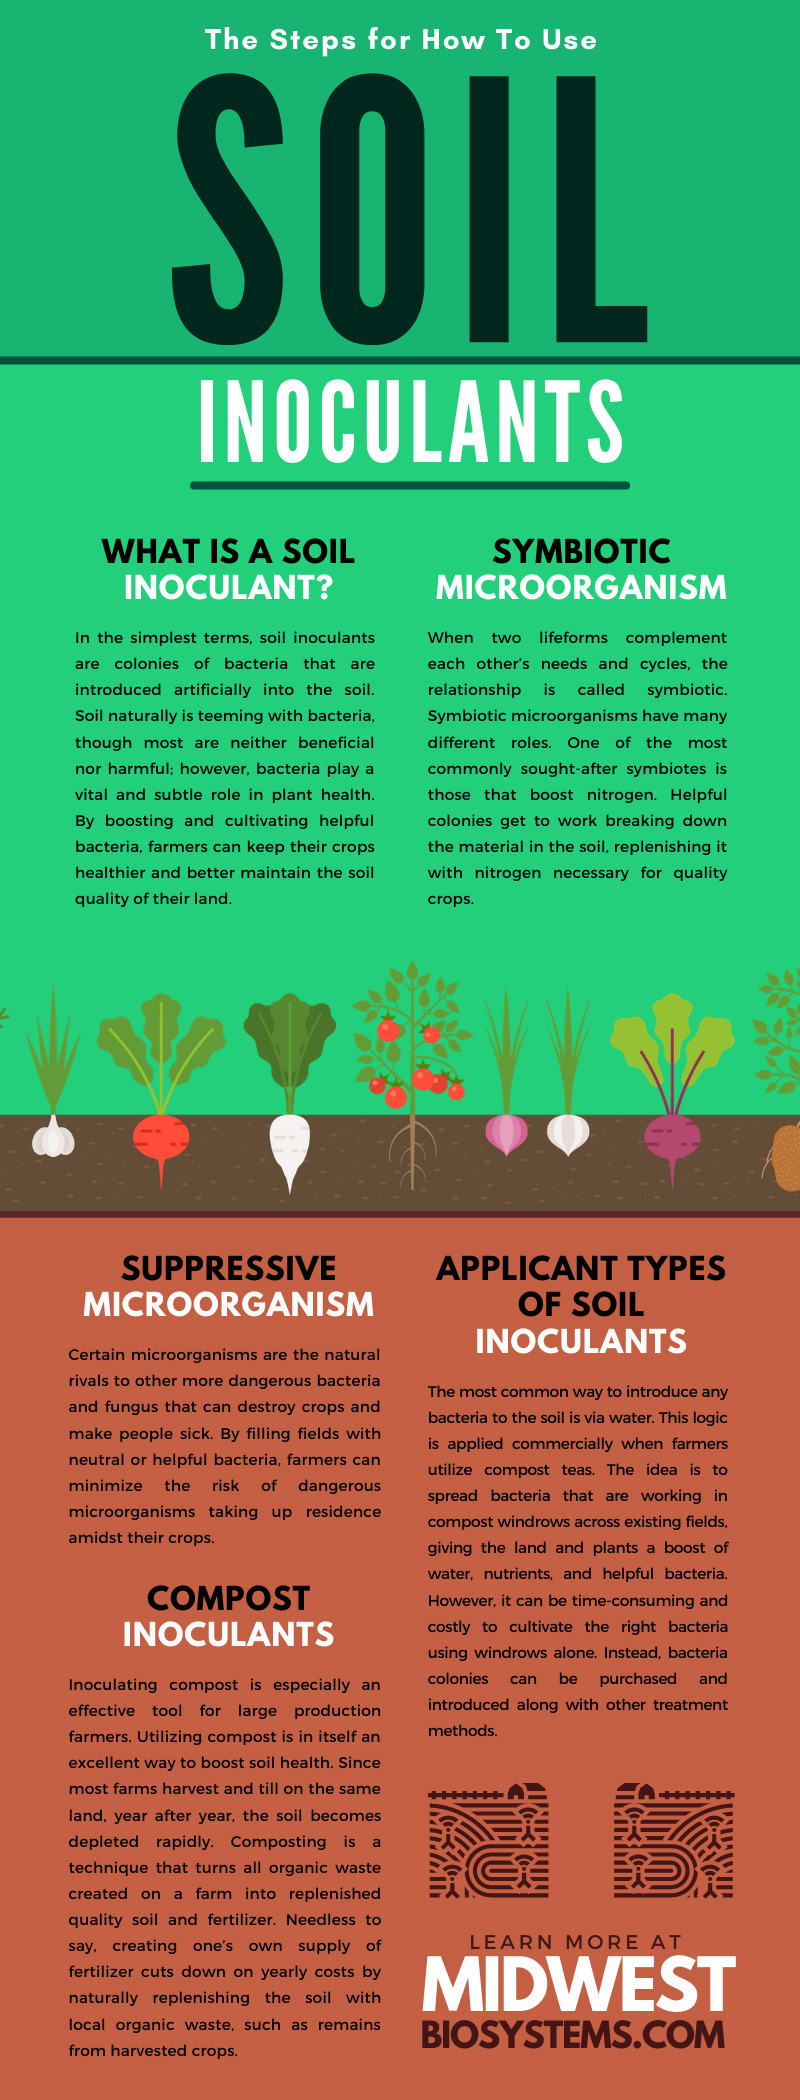 The Steps for How To Use Soil Inoculants